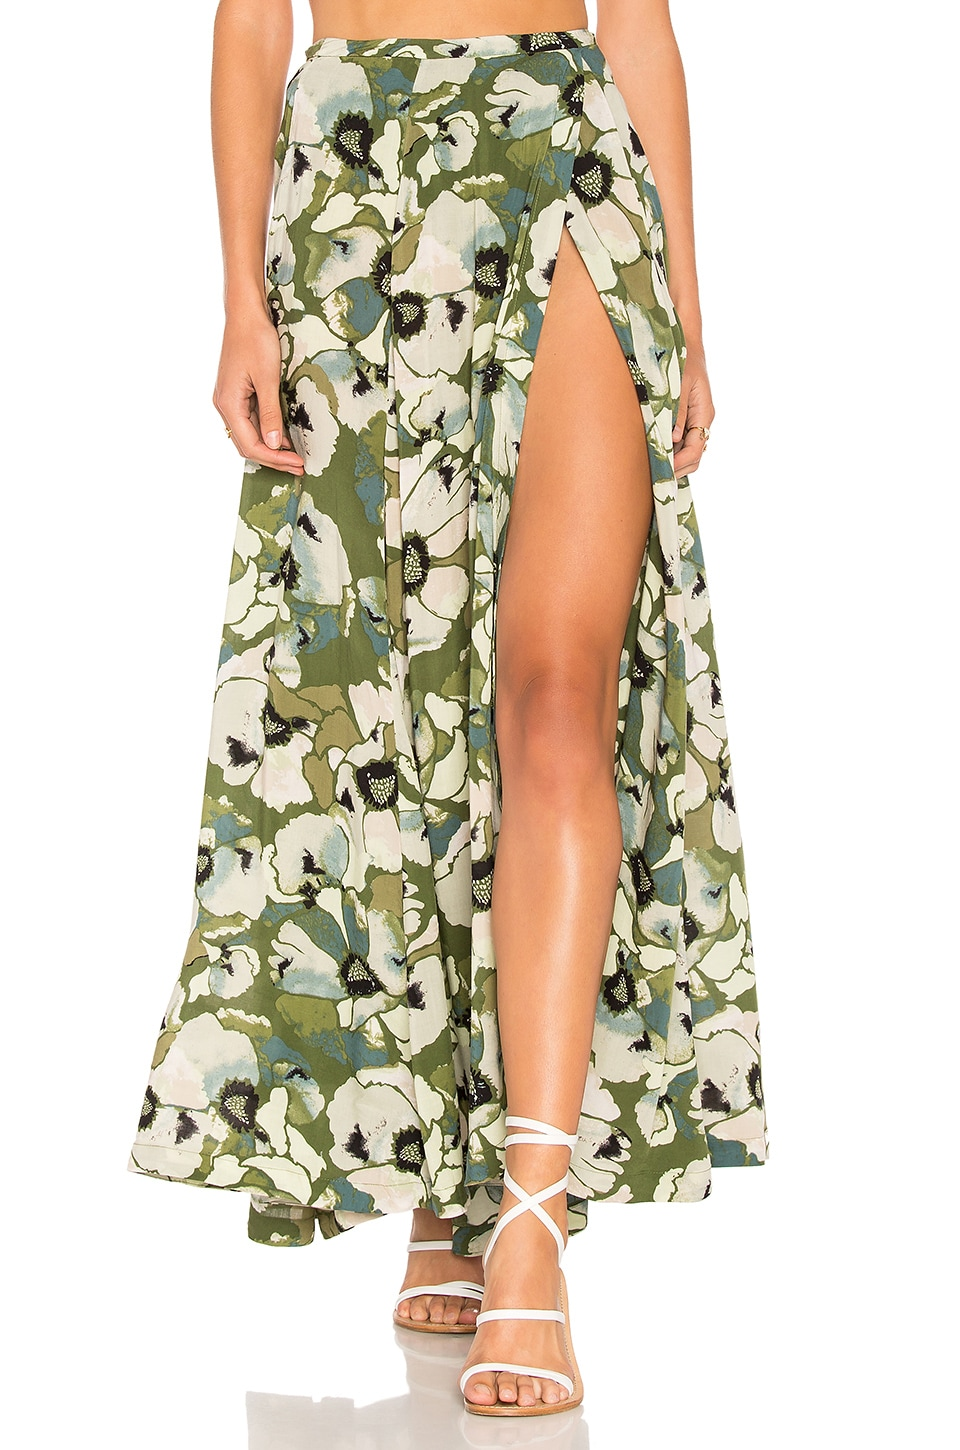 Free People Hot Tropics Maxi Skirt in Moss